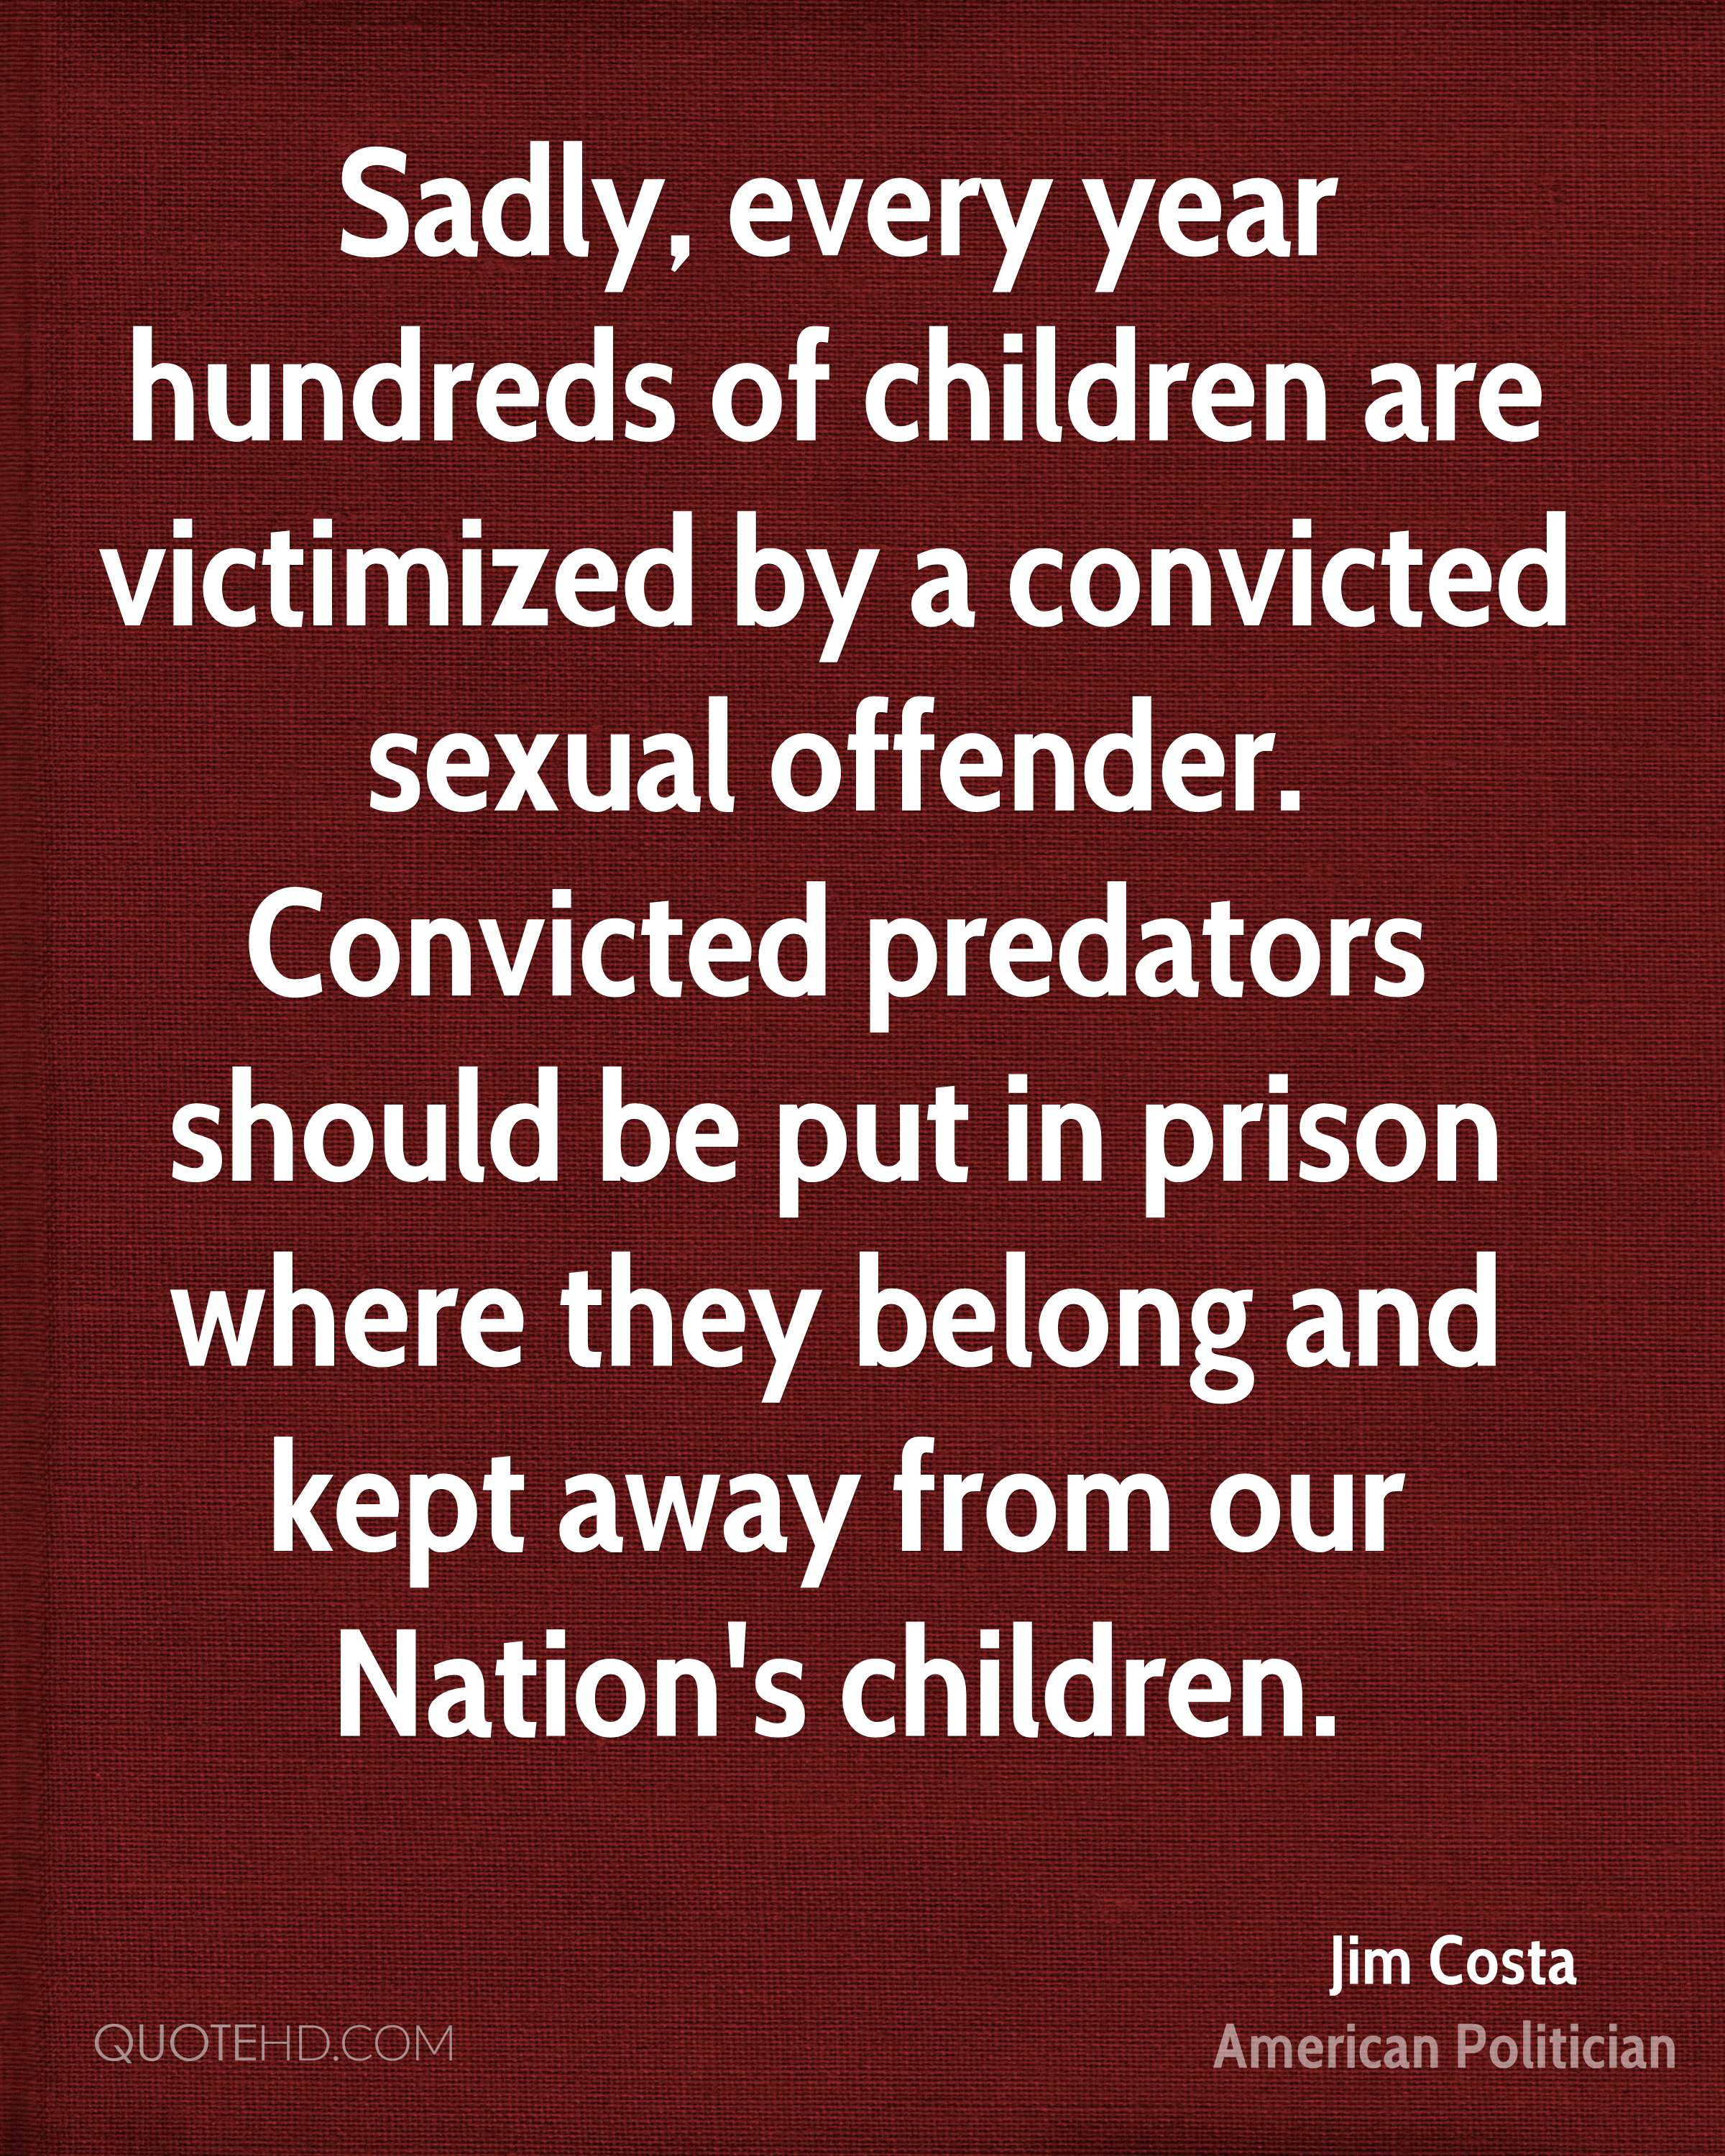 Sadly, every year hundreds of children are victimized by a convicted sexual offender. Convicted predators should be put in prison where they belong and kept away from our Nation's children.